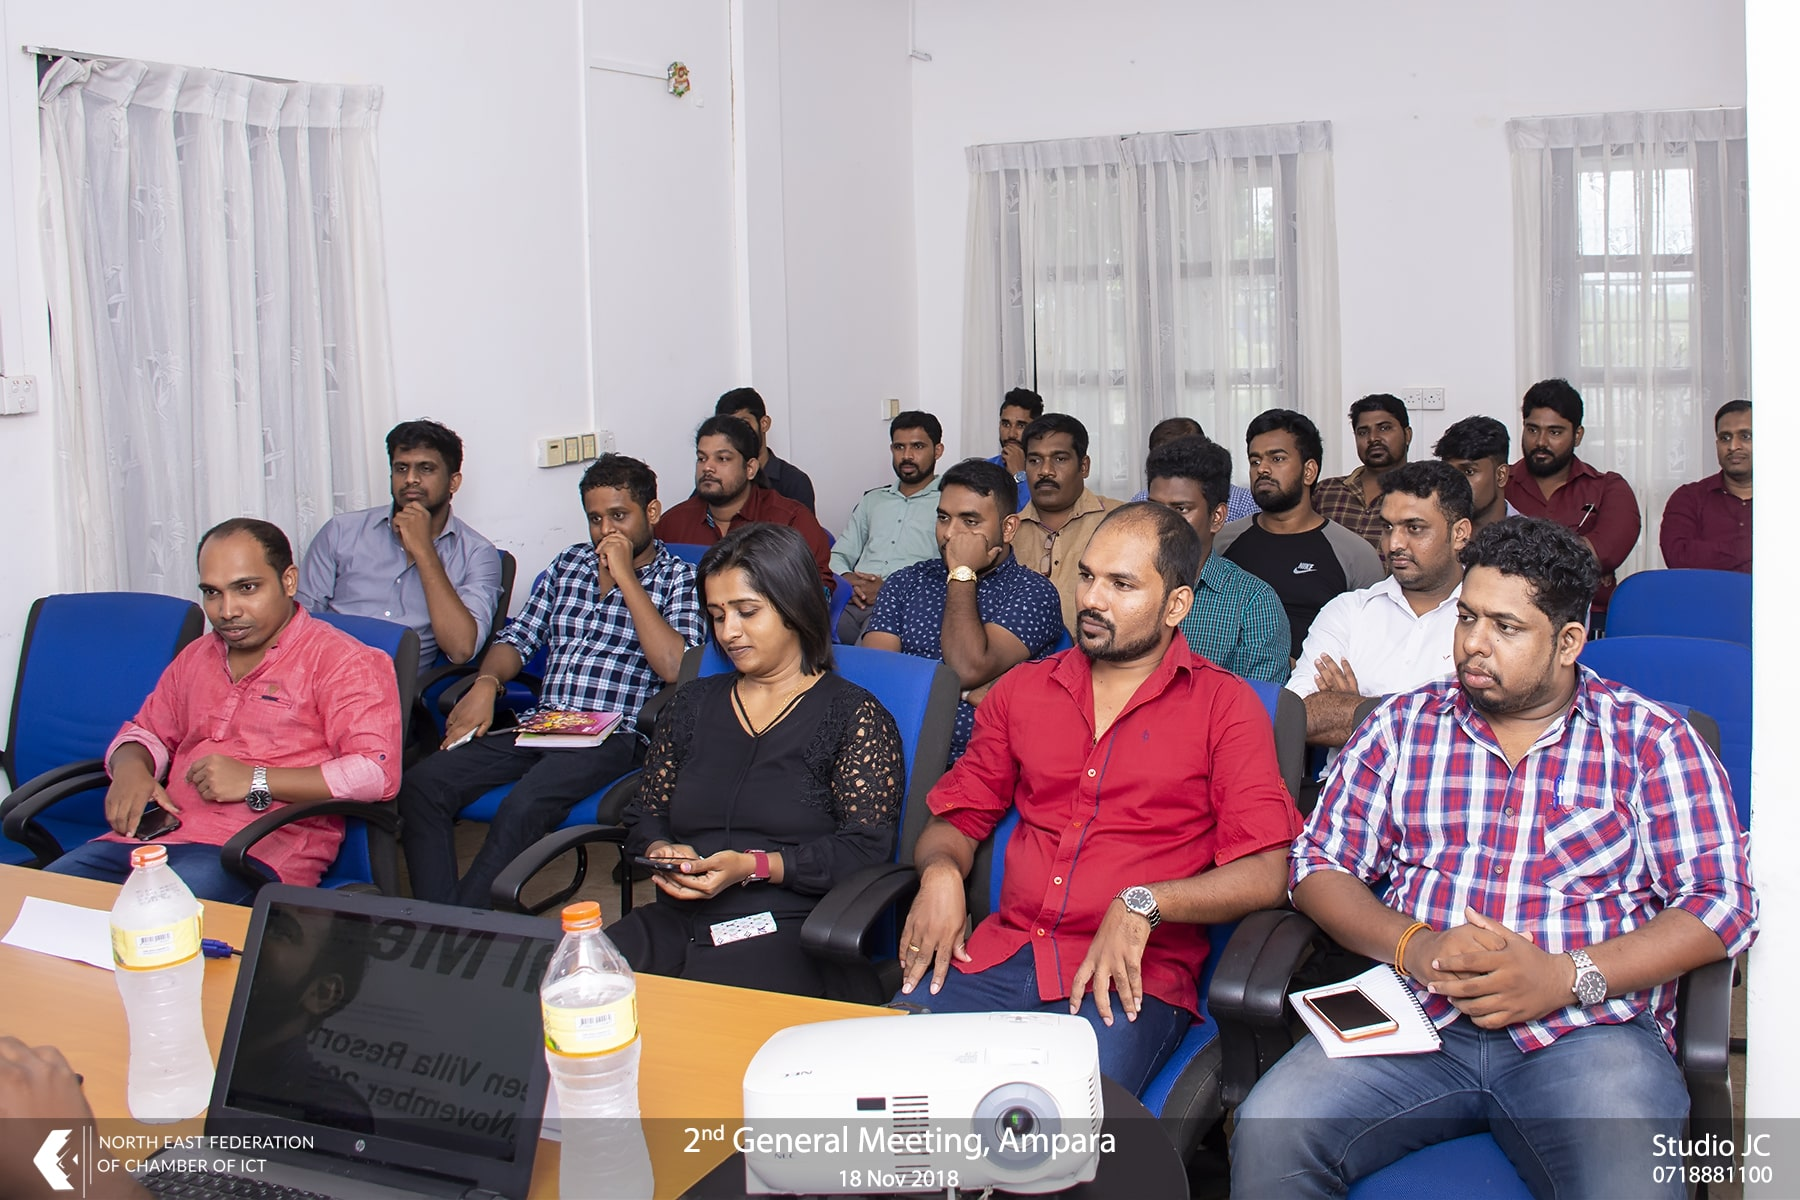 Second General Meeting of North East Federation of Chamber of ICT 14